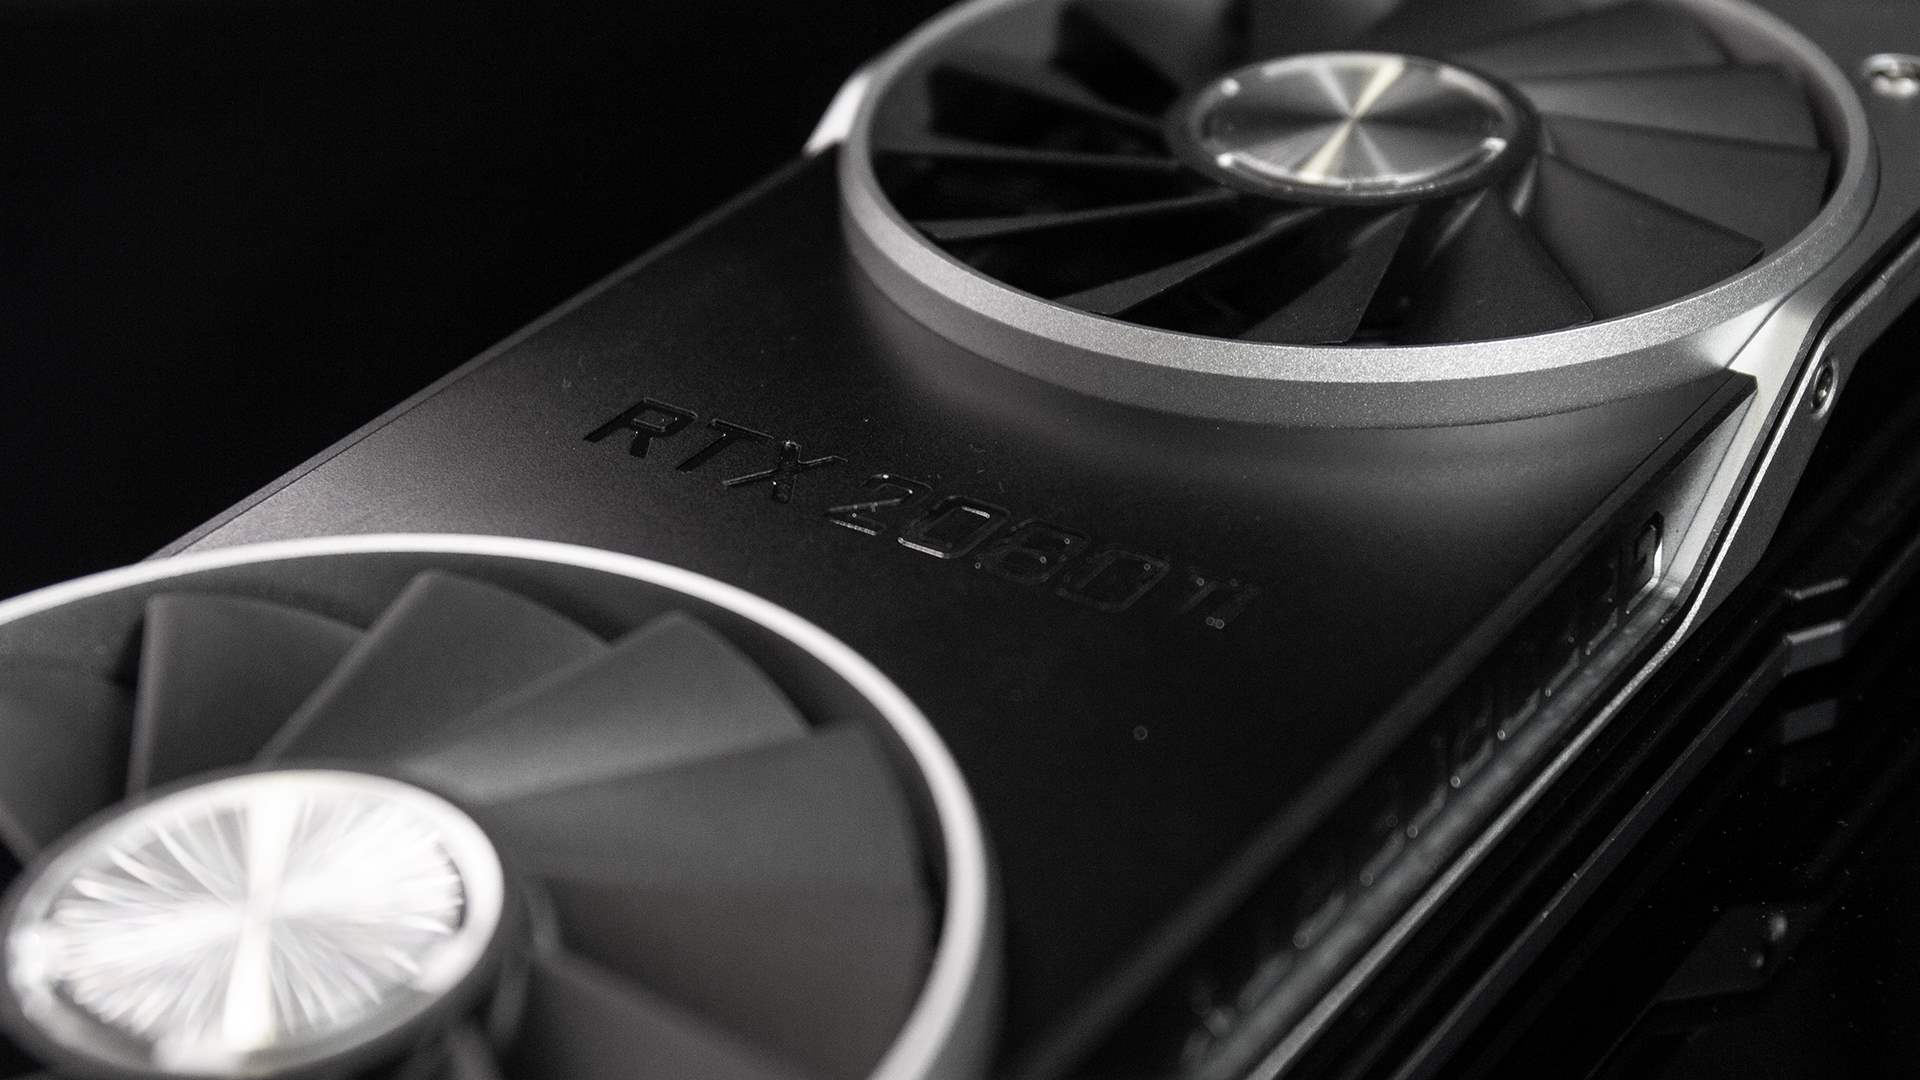 Nvidia has released new RTX 2080 Ti drivers to fix some GPU failures